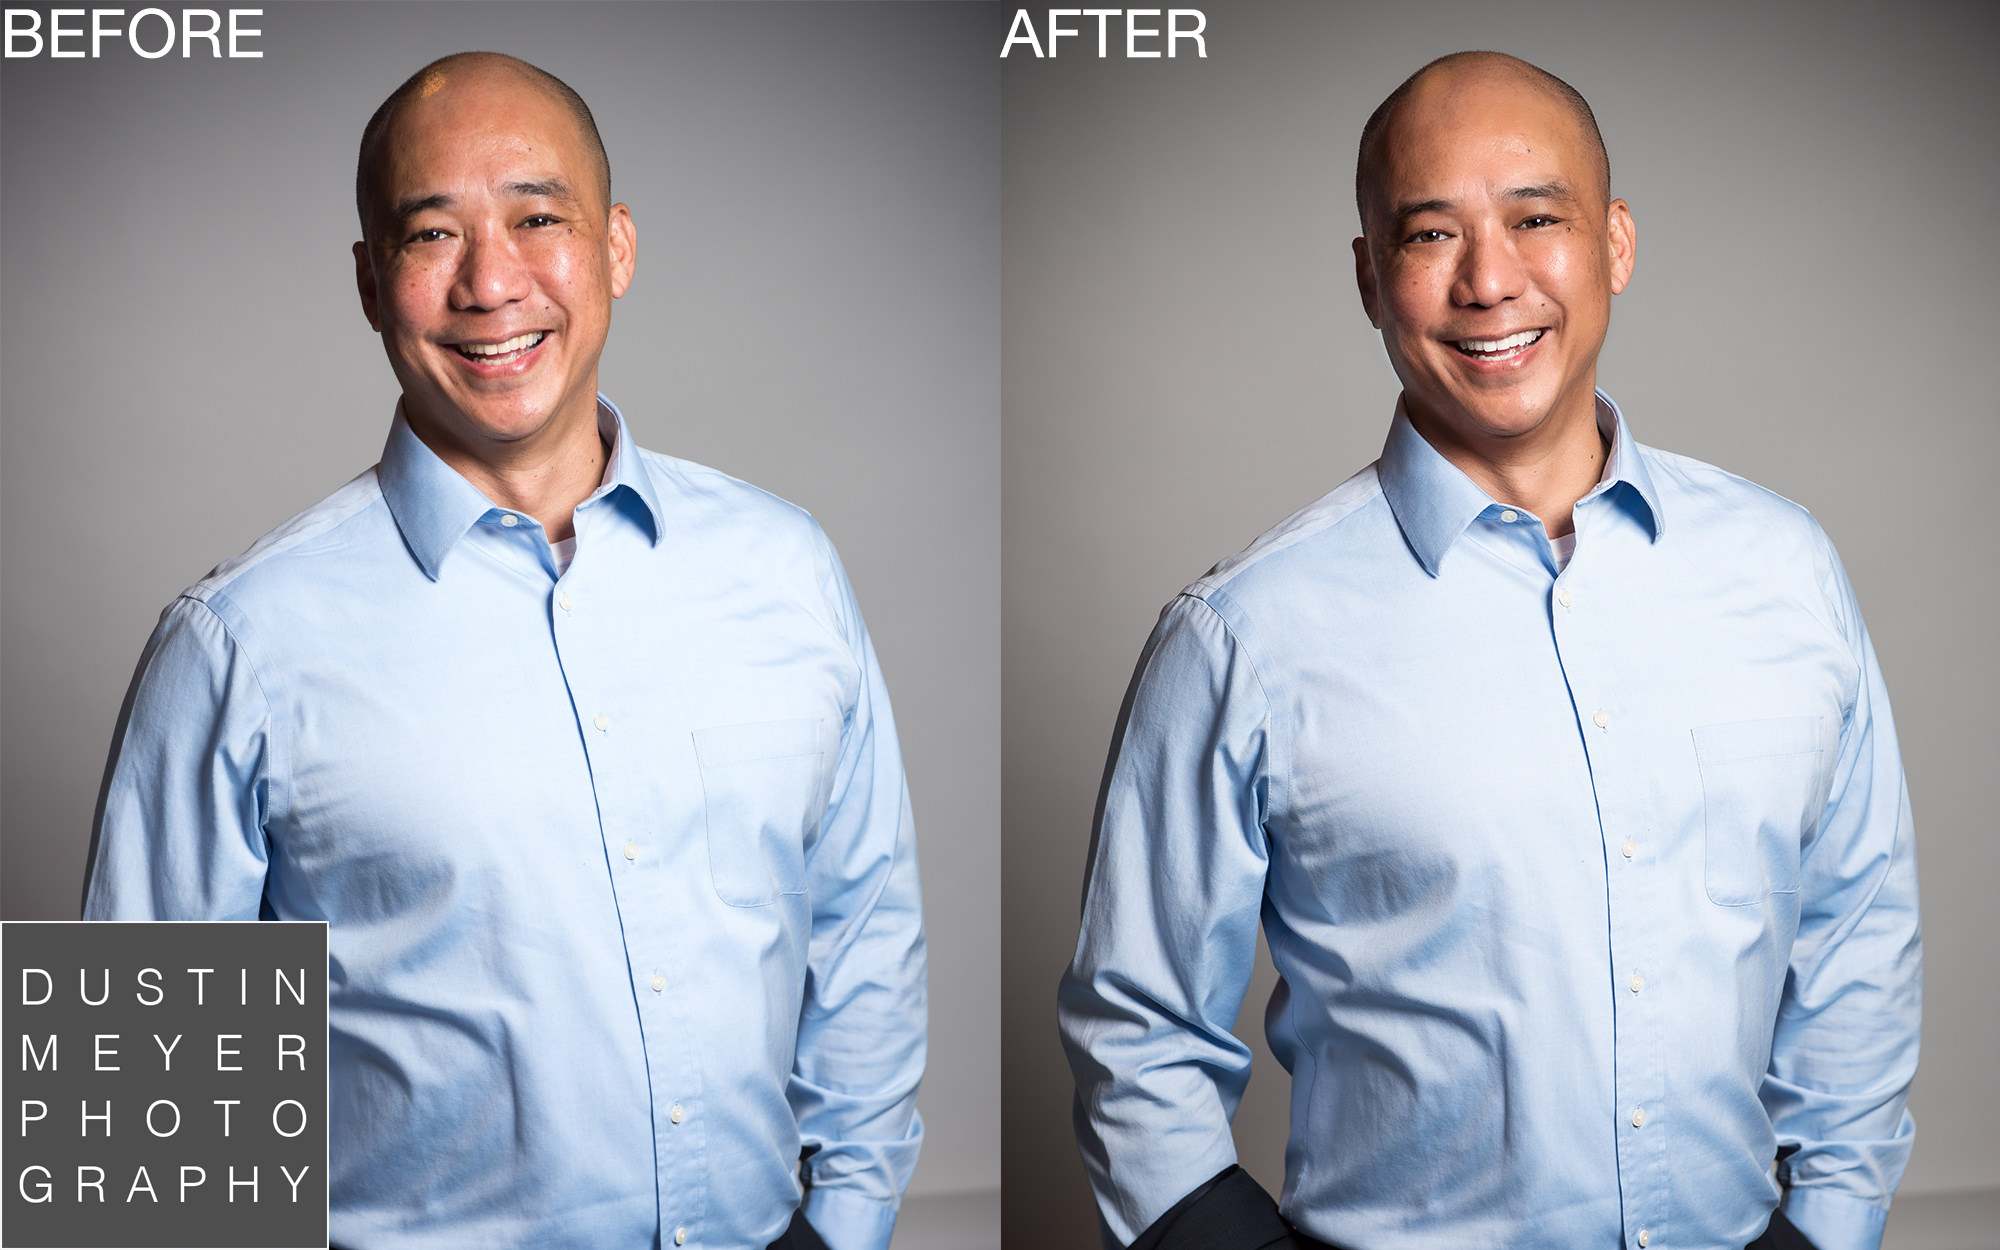 Professional Headshots Retouched before and after